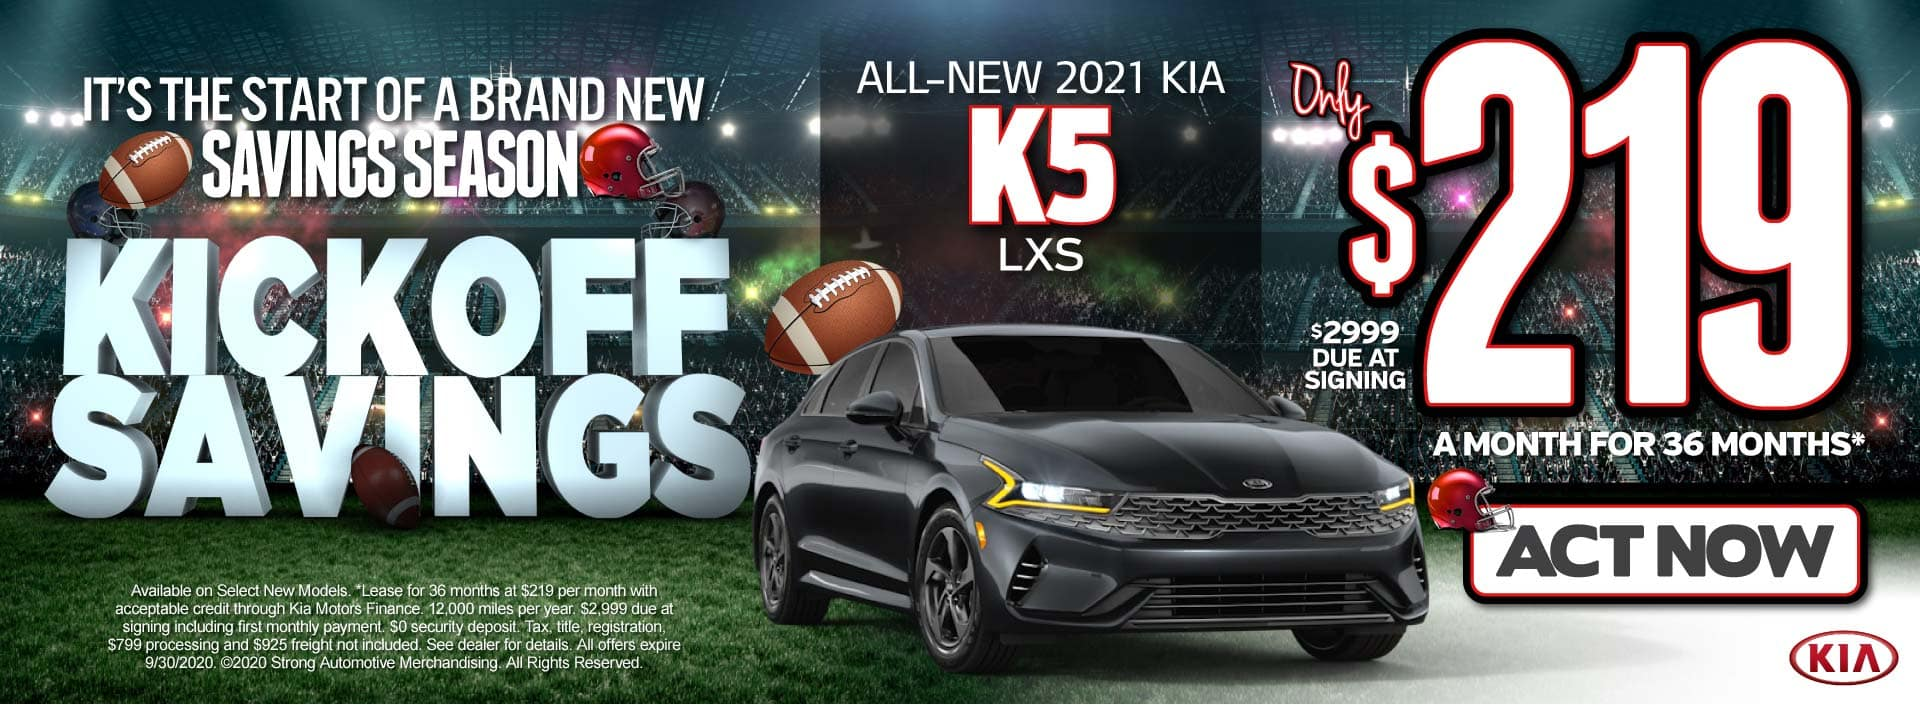 All-New 2021 Kia K5 only $219/mo - ACT NOW